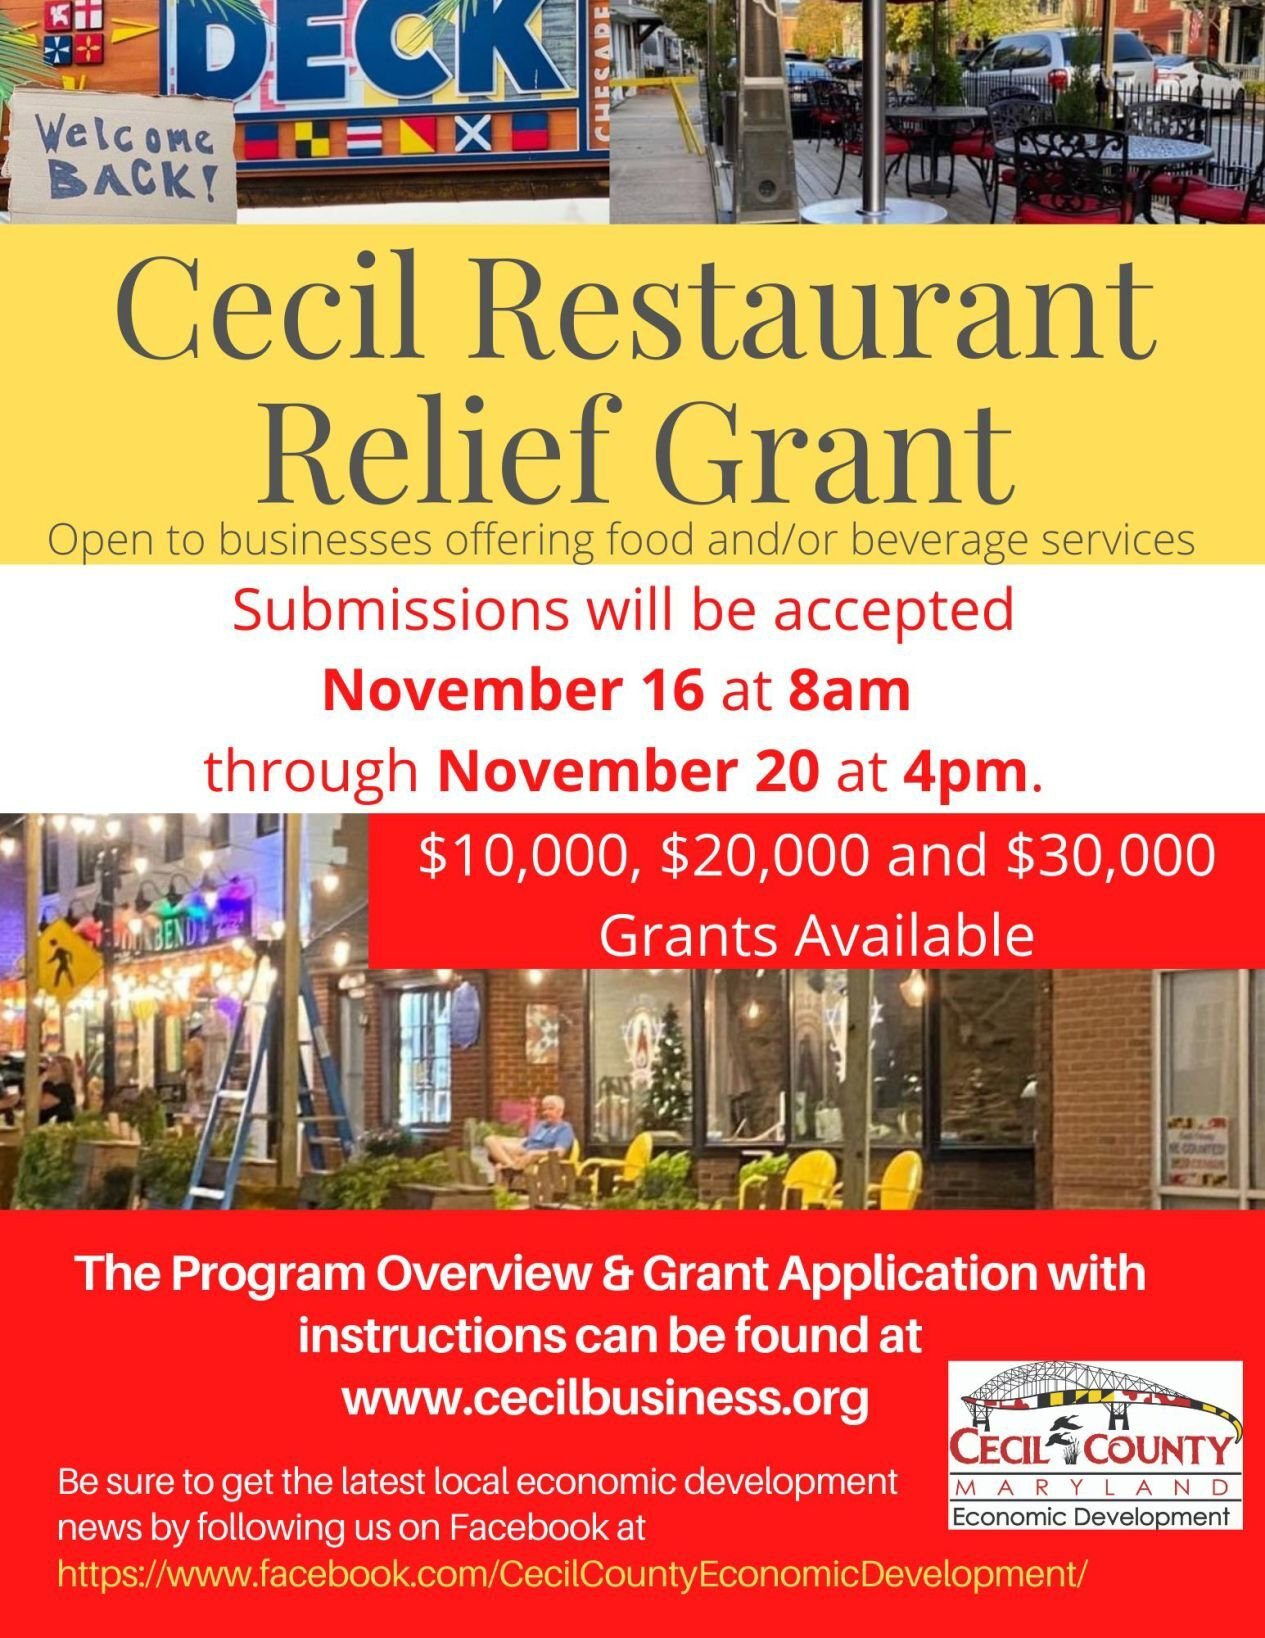 Cecil Restaurant Relief Grant applications available